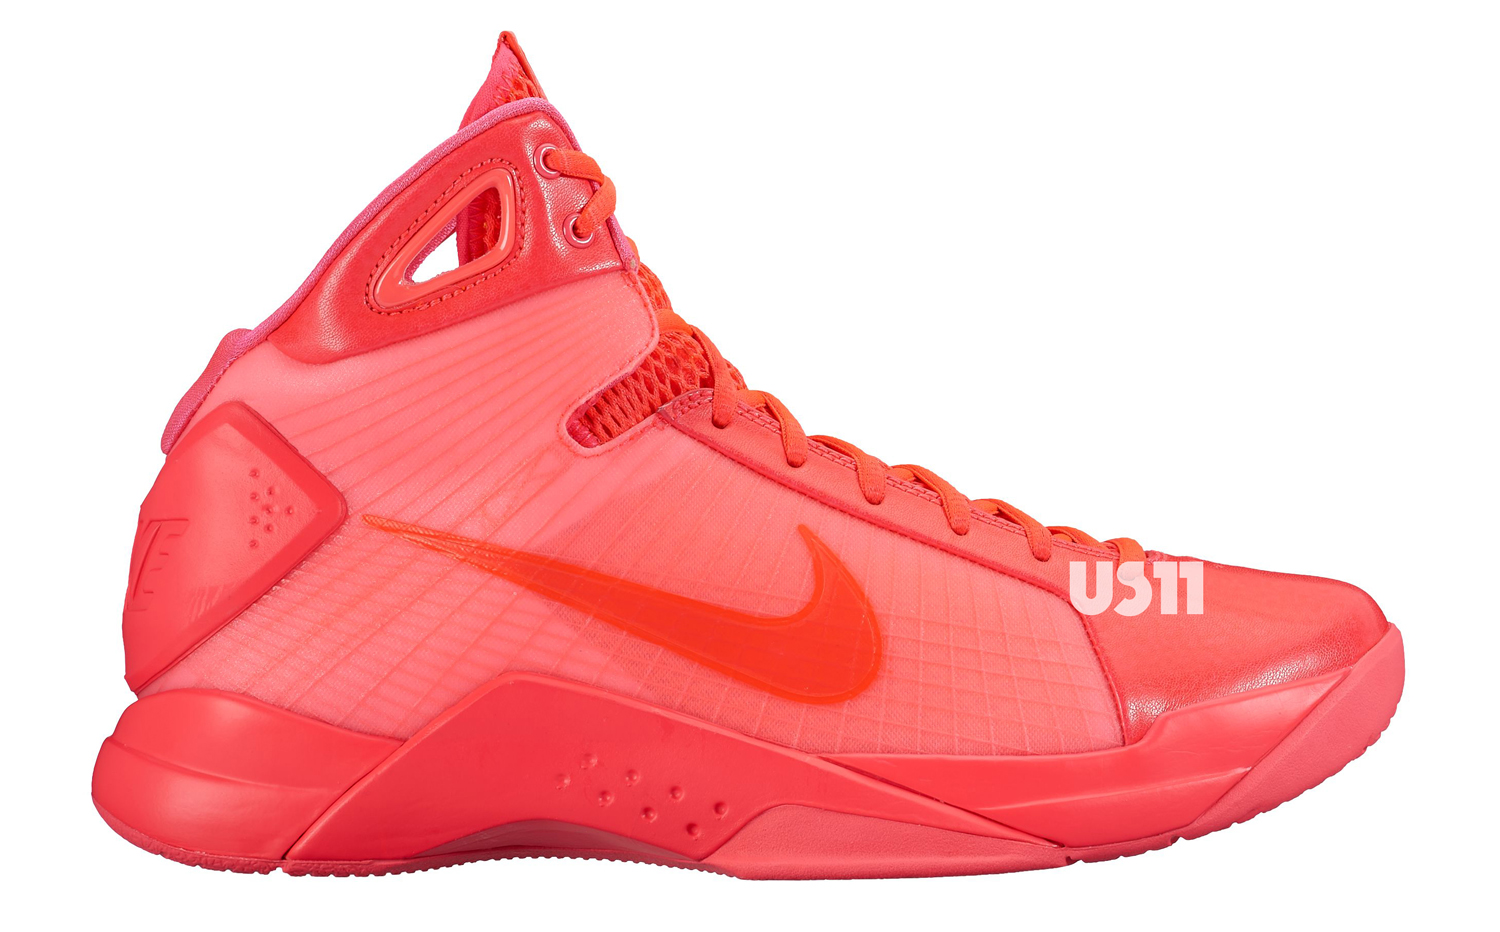 Nike to Bring Back First-Ever Hyperdunk